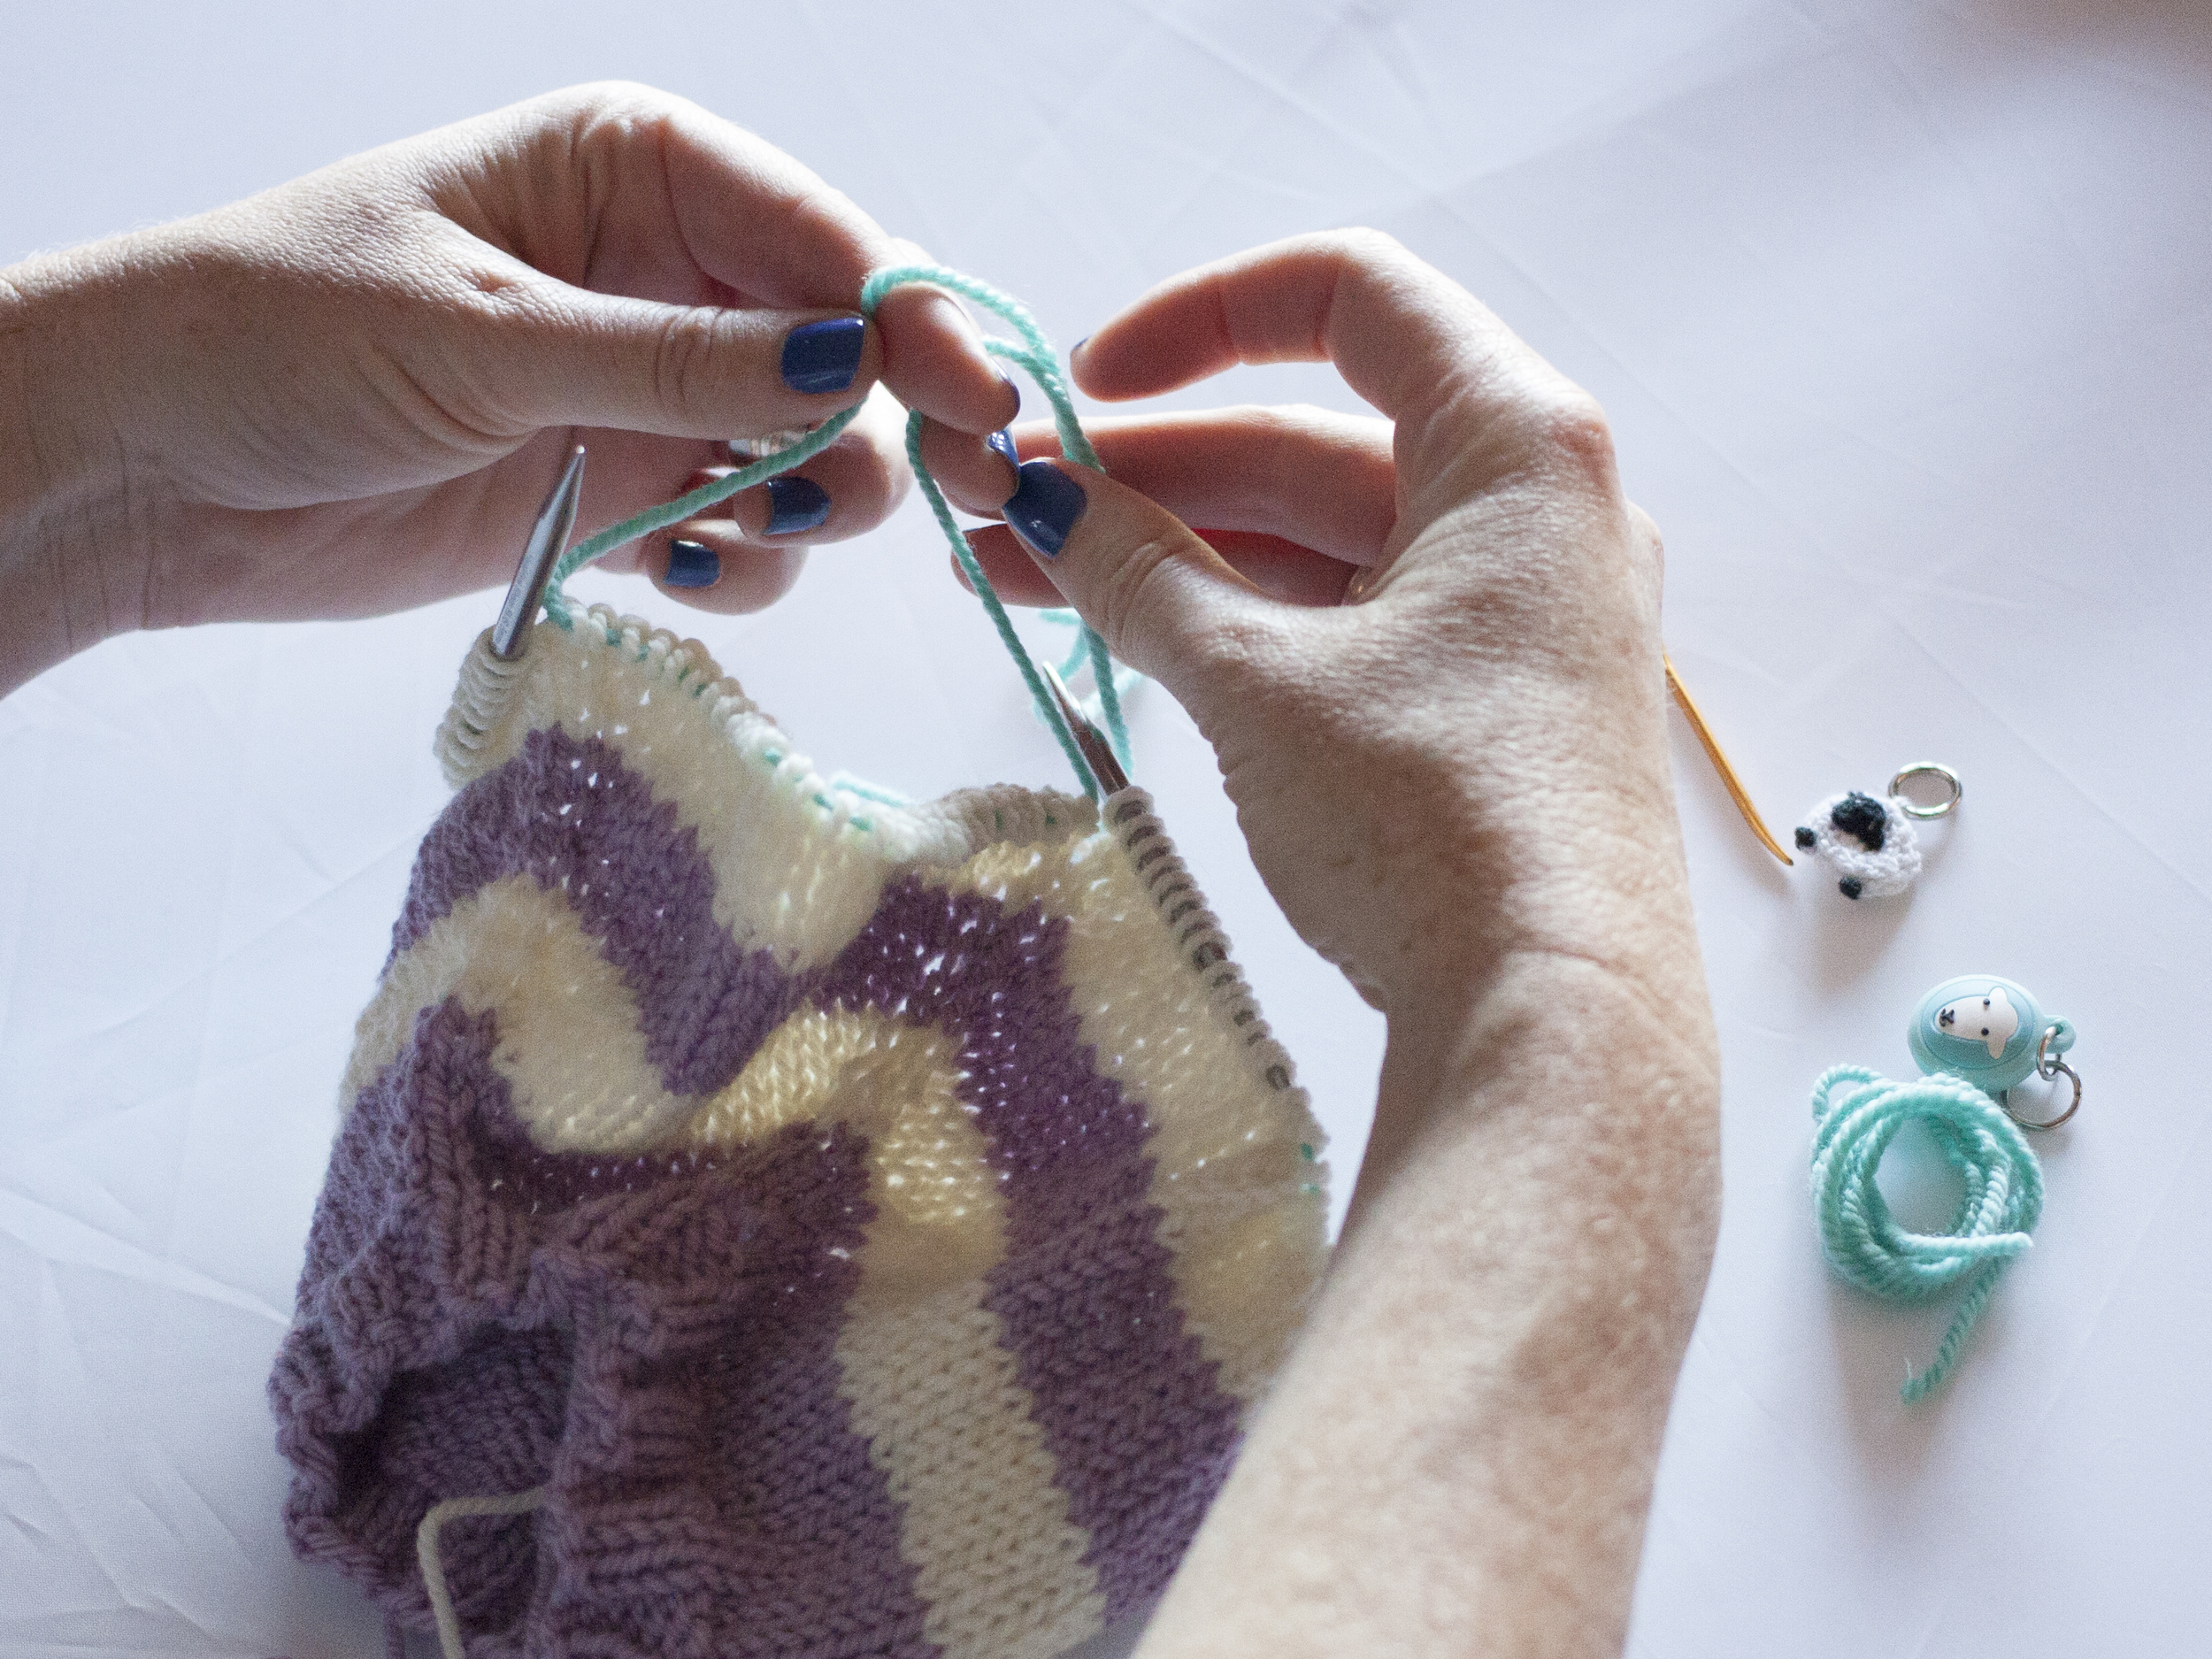 Securing knitting stitches for later